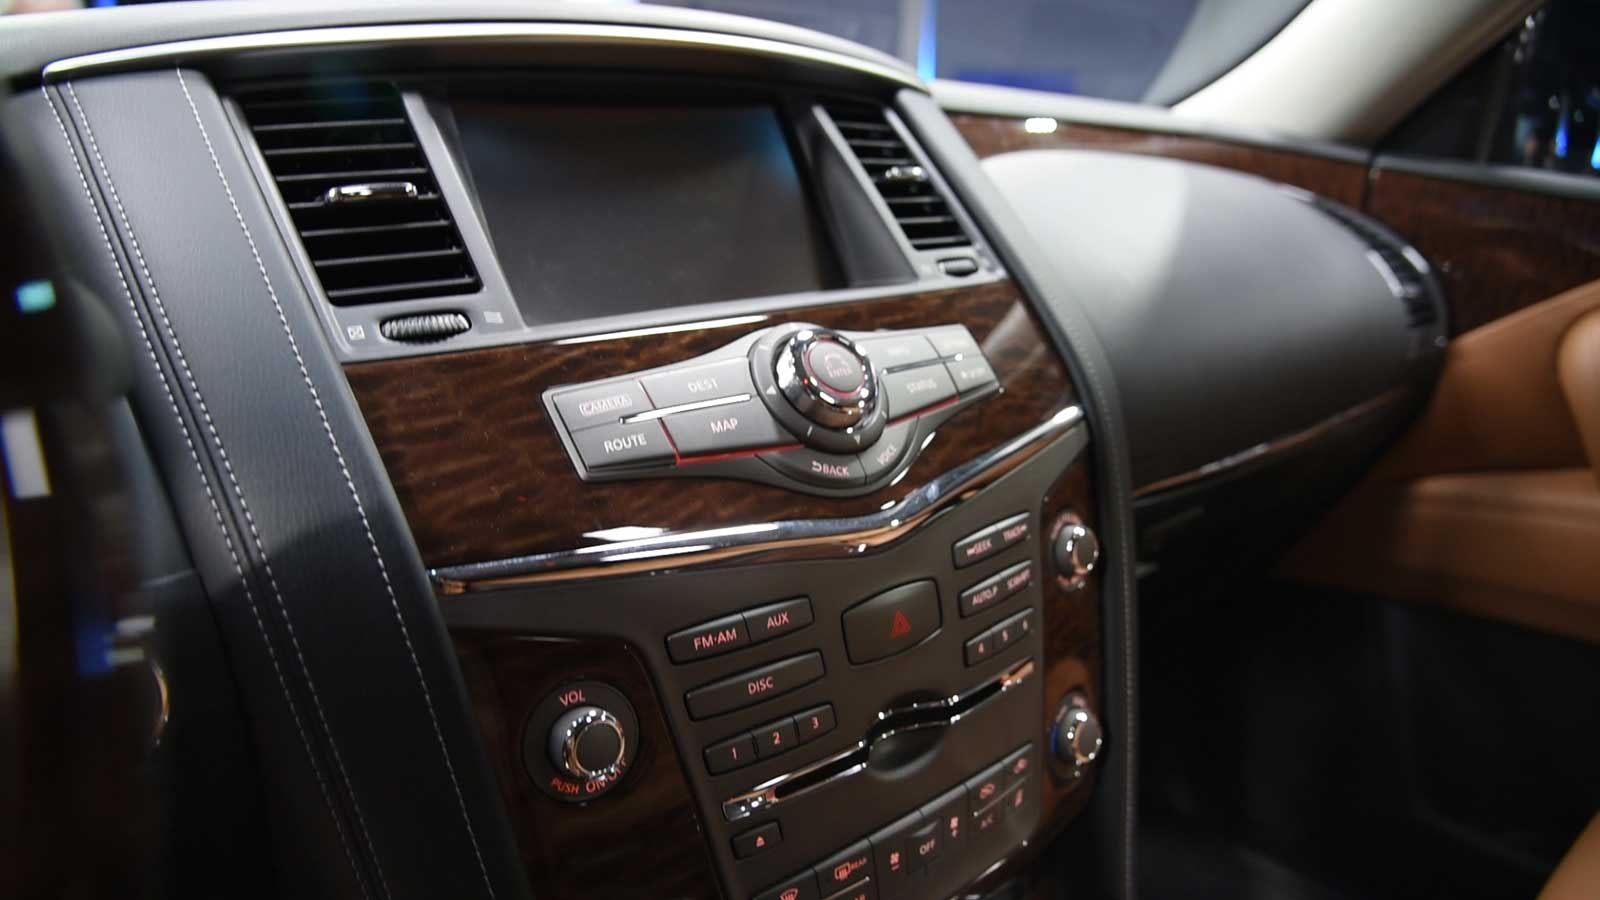 100 Nissan Suv 2016 Interior 2013 Nissan Pathfinder Information And Photos Zombiedrive